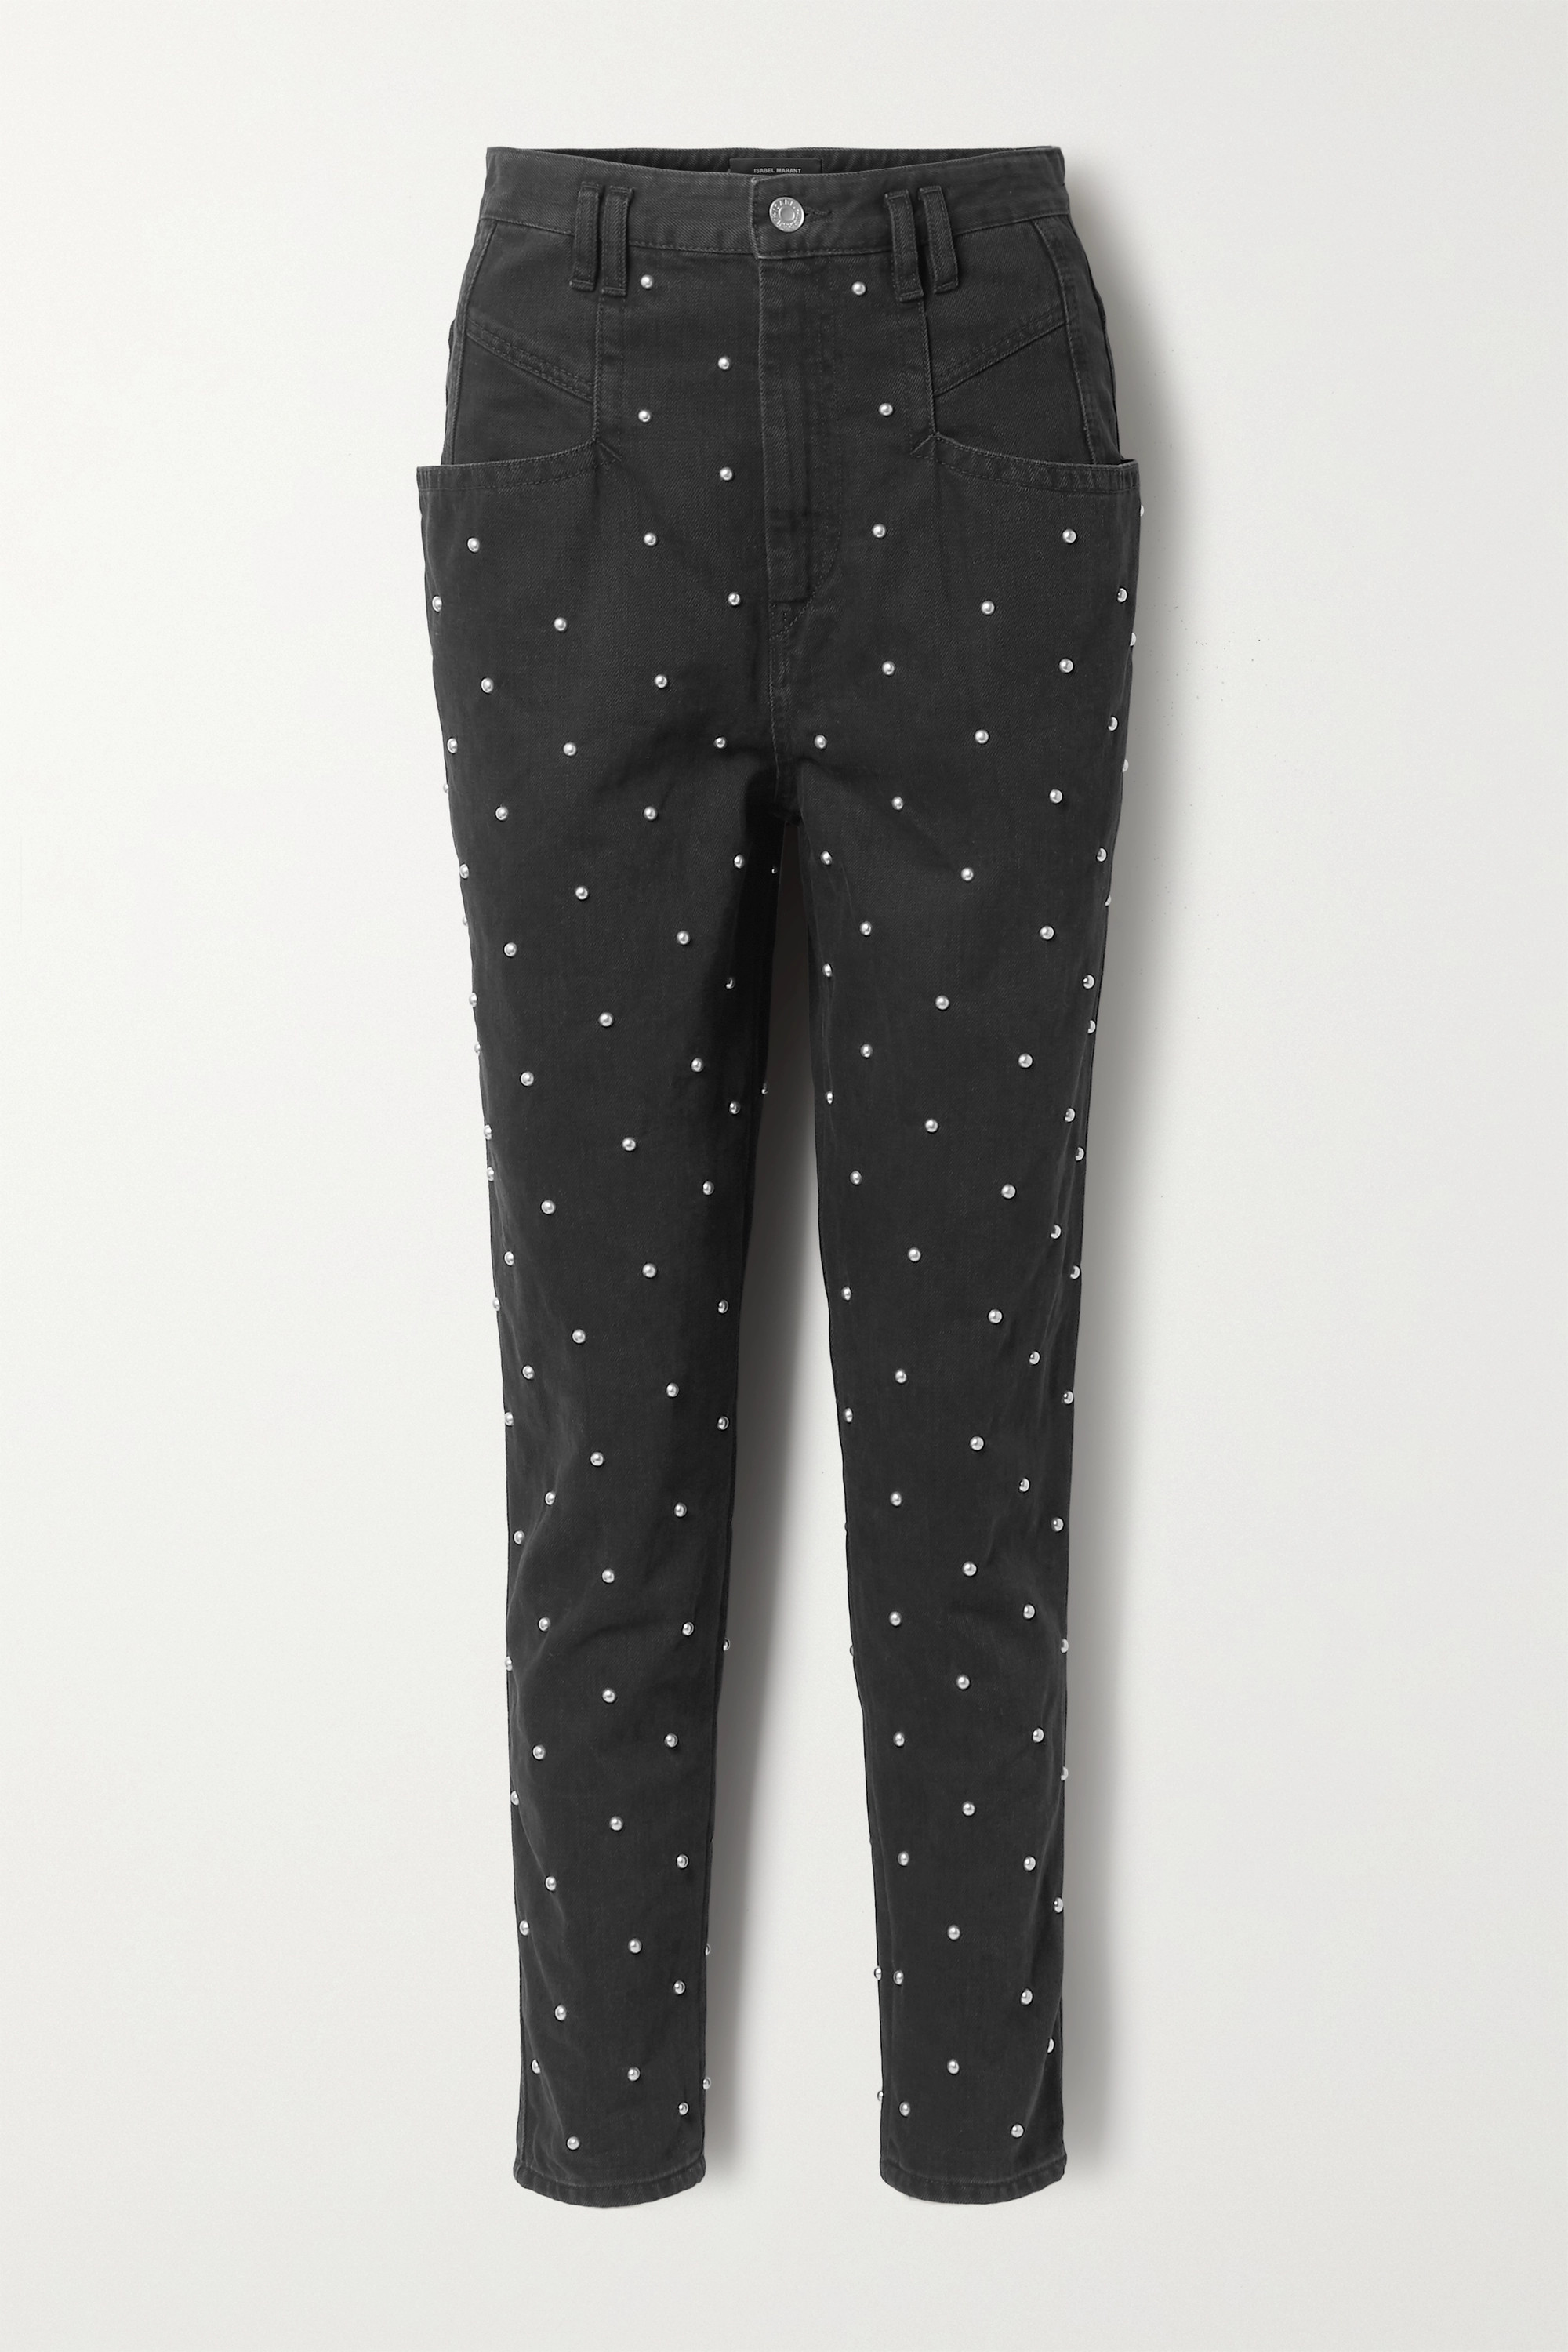 Isabel Marant Stud-embellished high-rise tapered jeans